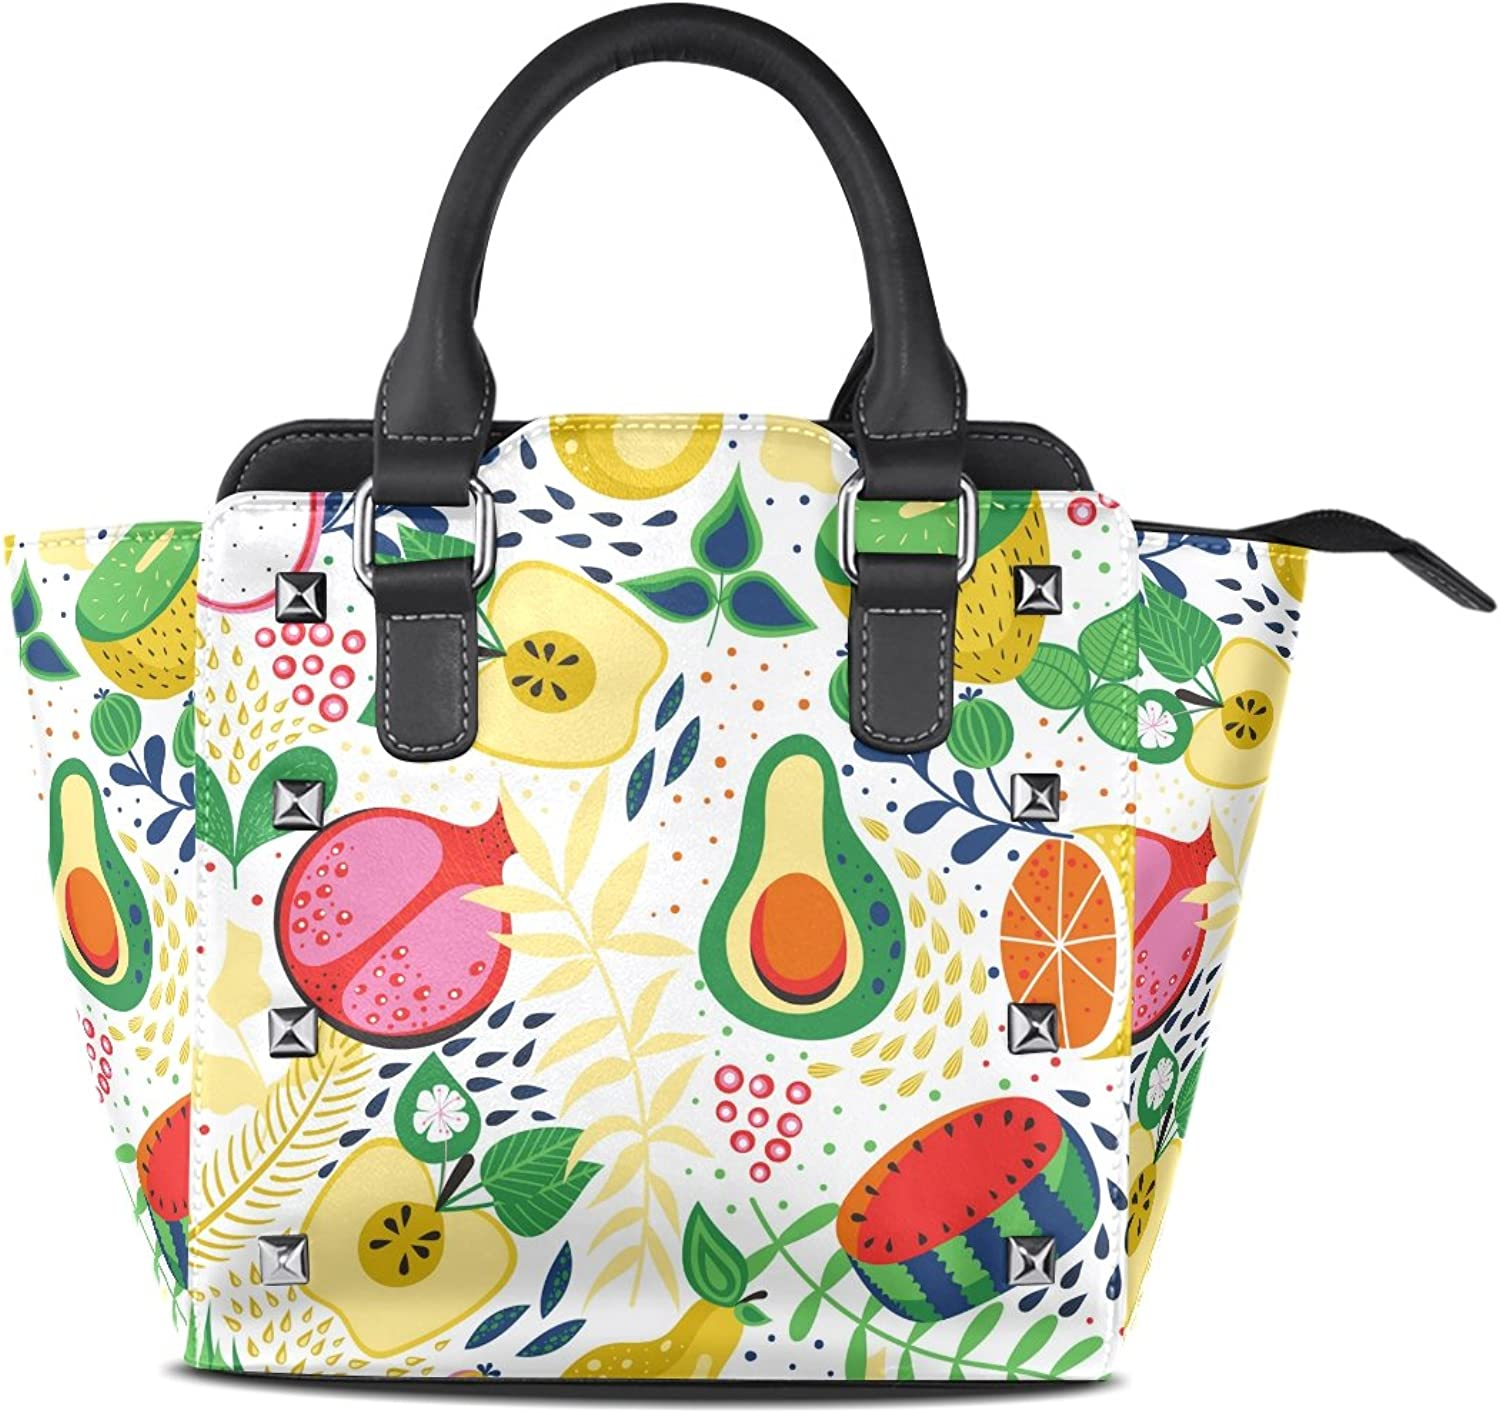 My Little Nest Women's Top Handle Satchel Handbag Tropical Fruits Ladies PU Leather Shoulder Bag Crossbody Bag